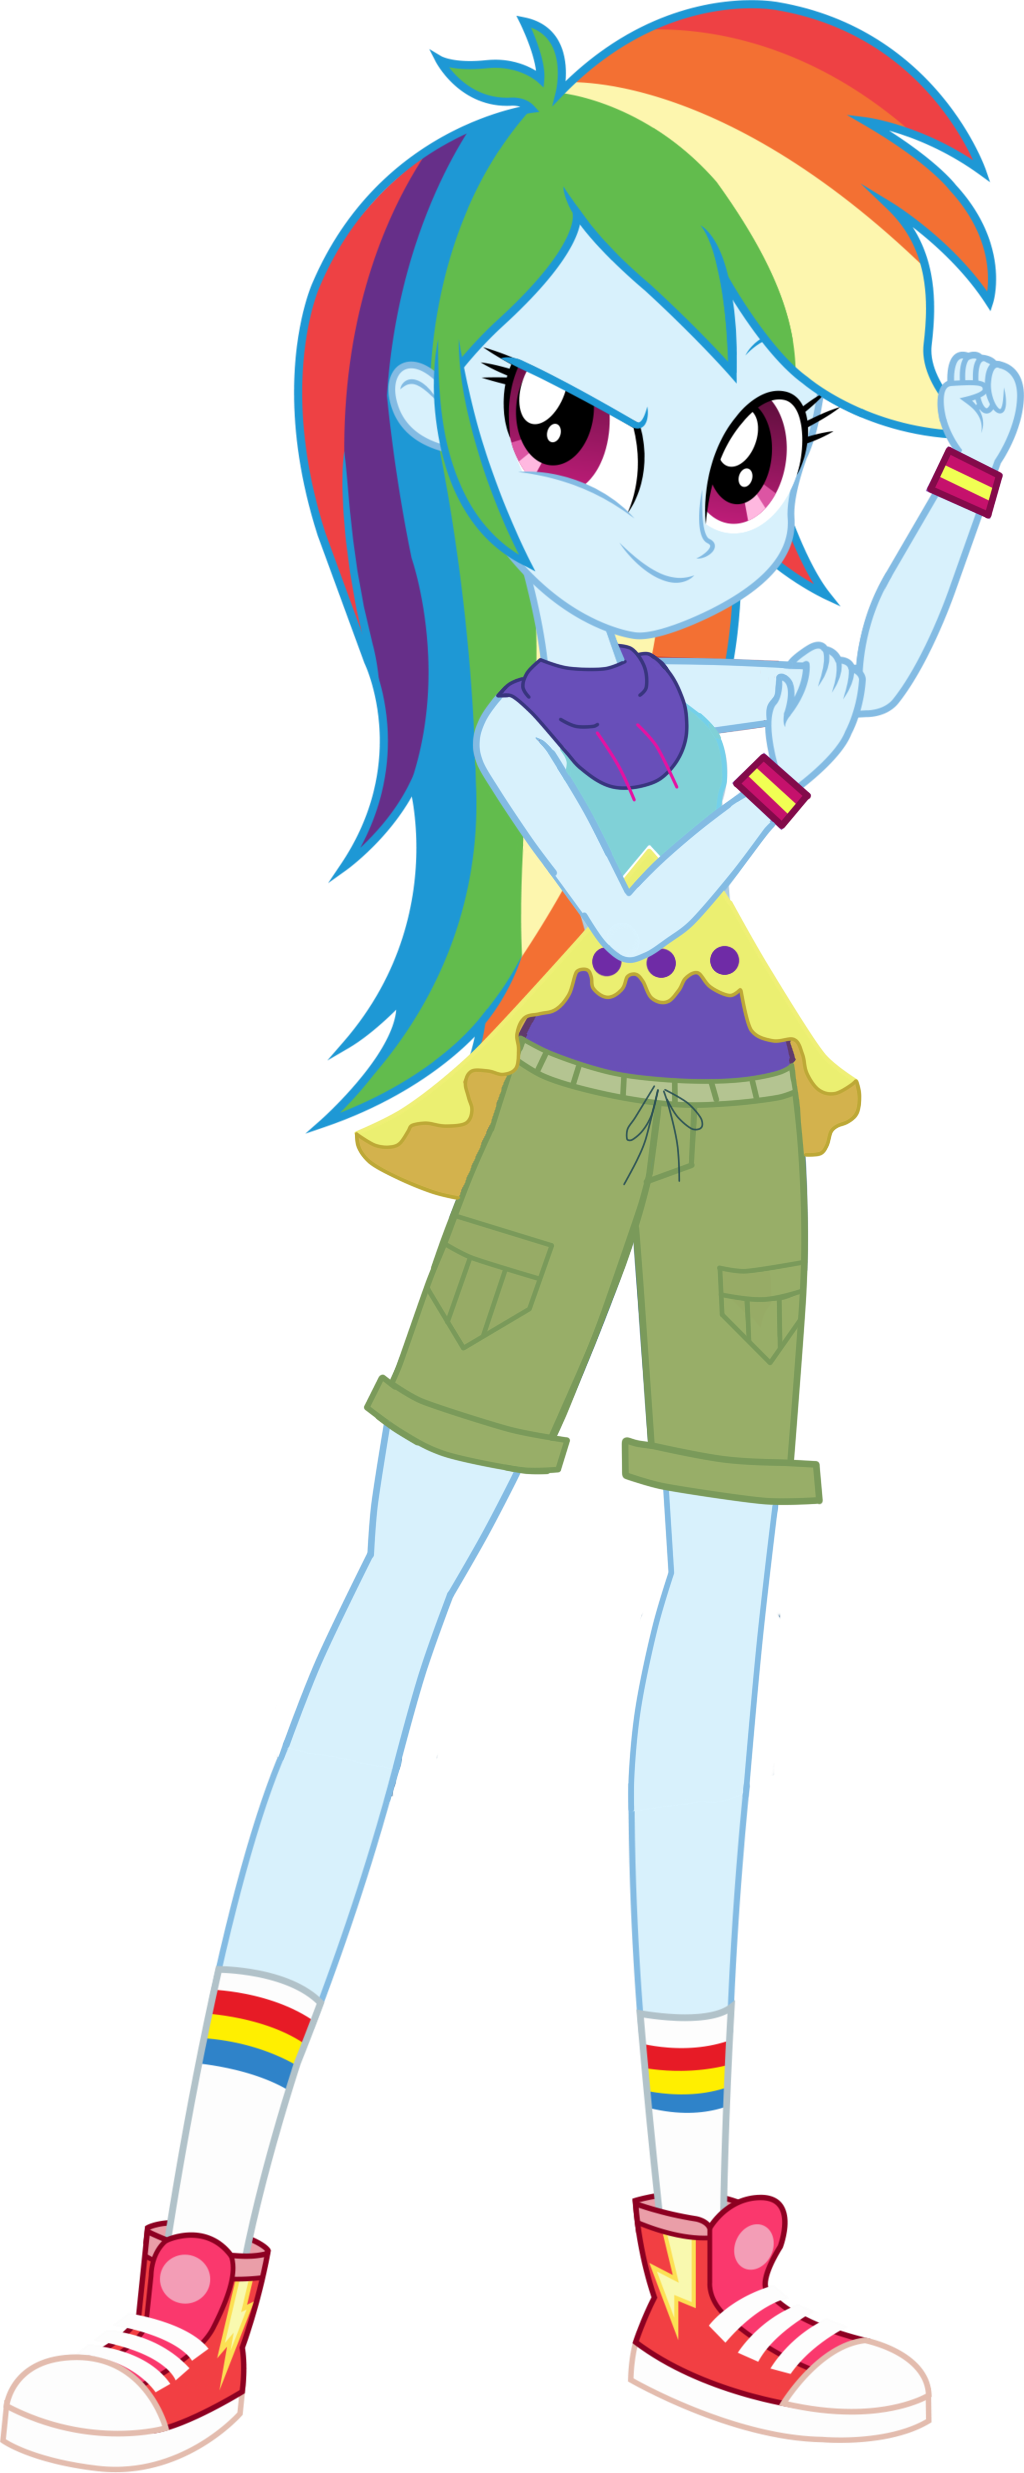 Rainbow Dash Legend Of Everfree By Mlgskittles On Deviantart